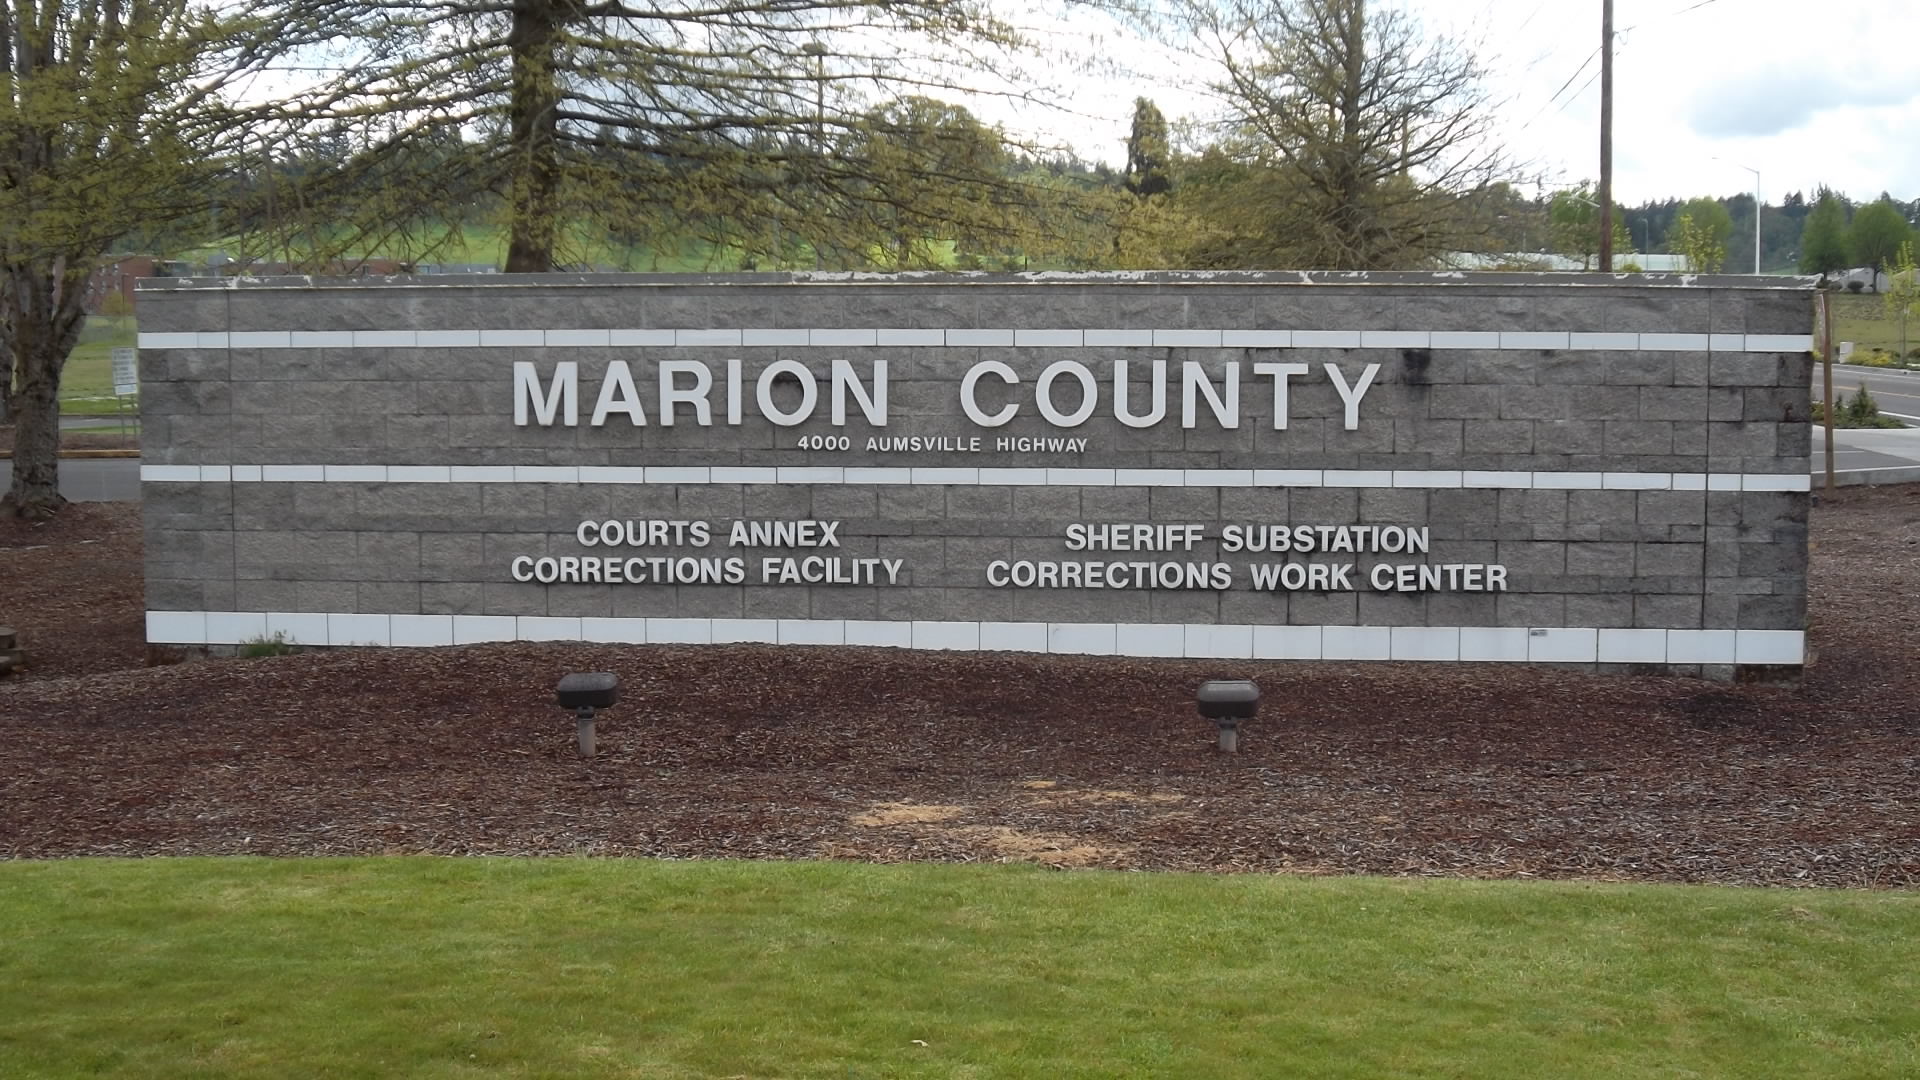 Marion County Sign 2.JPG